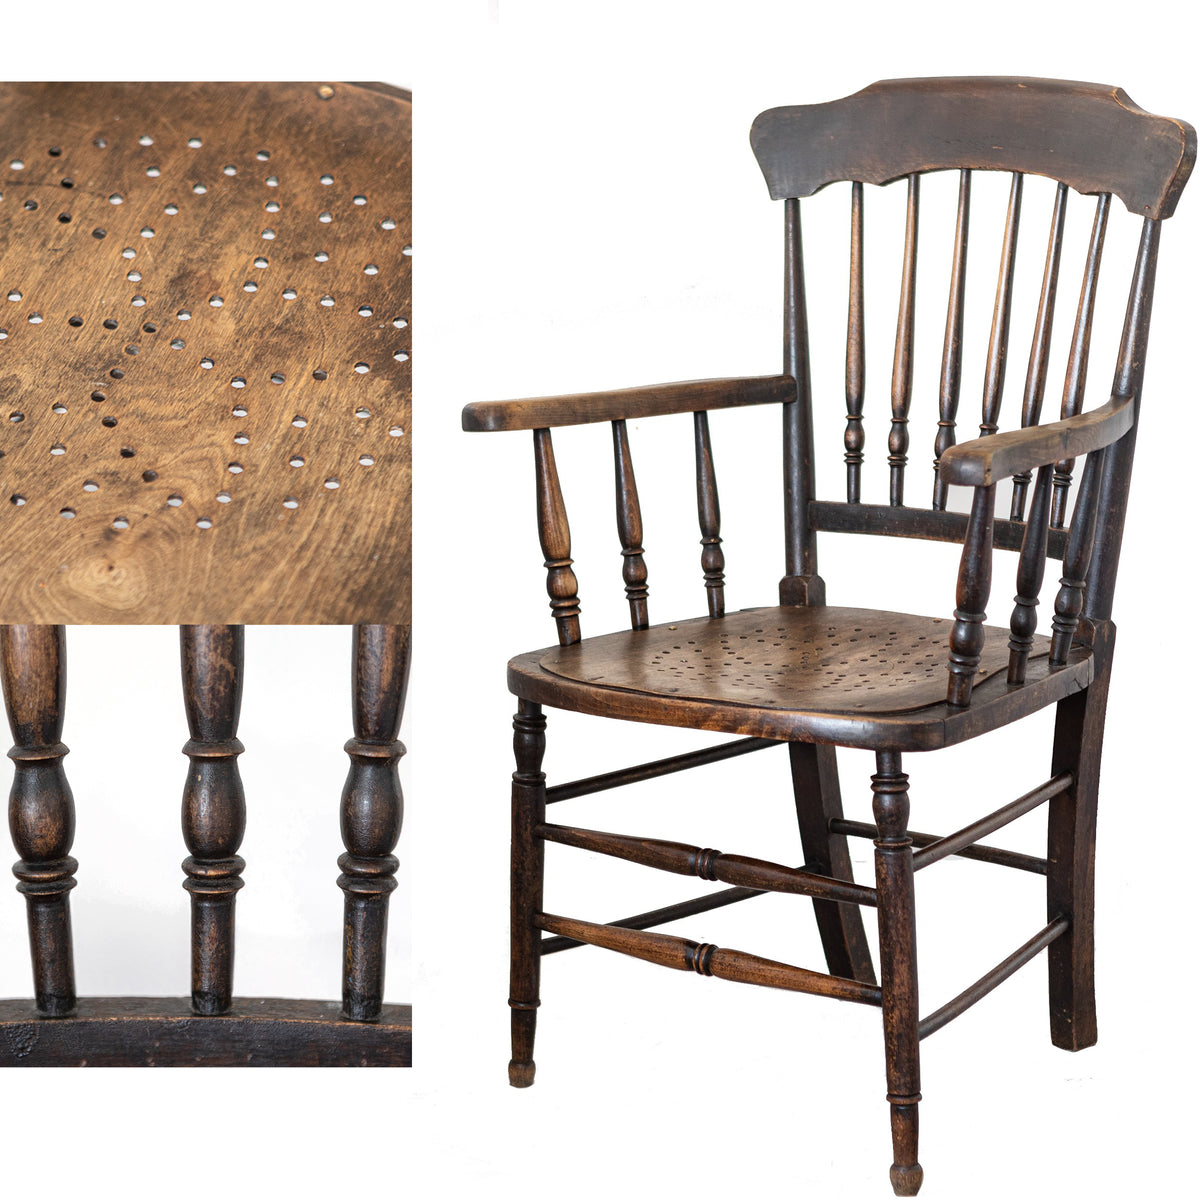 Antique Elm & Beech Hole-Punch Seat Chair | The Architectural Forum